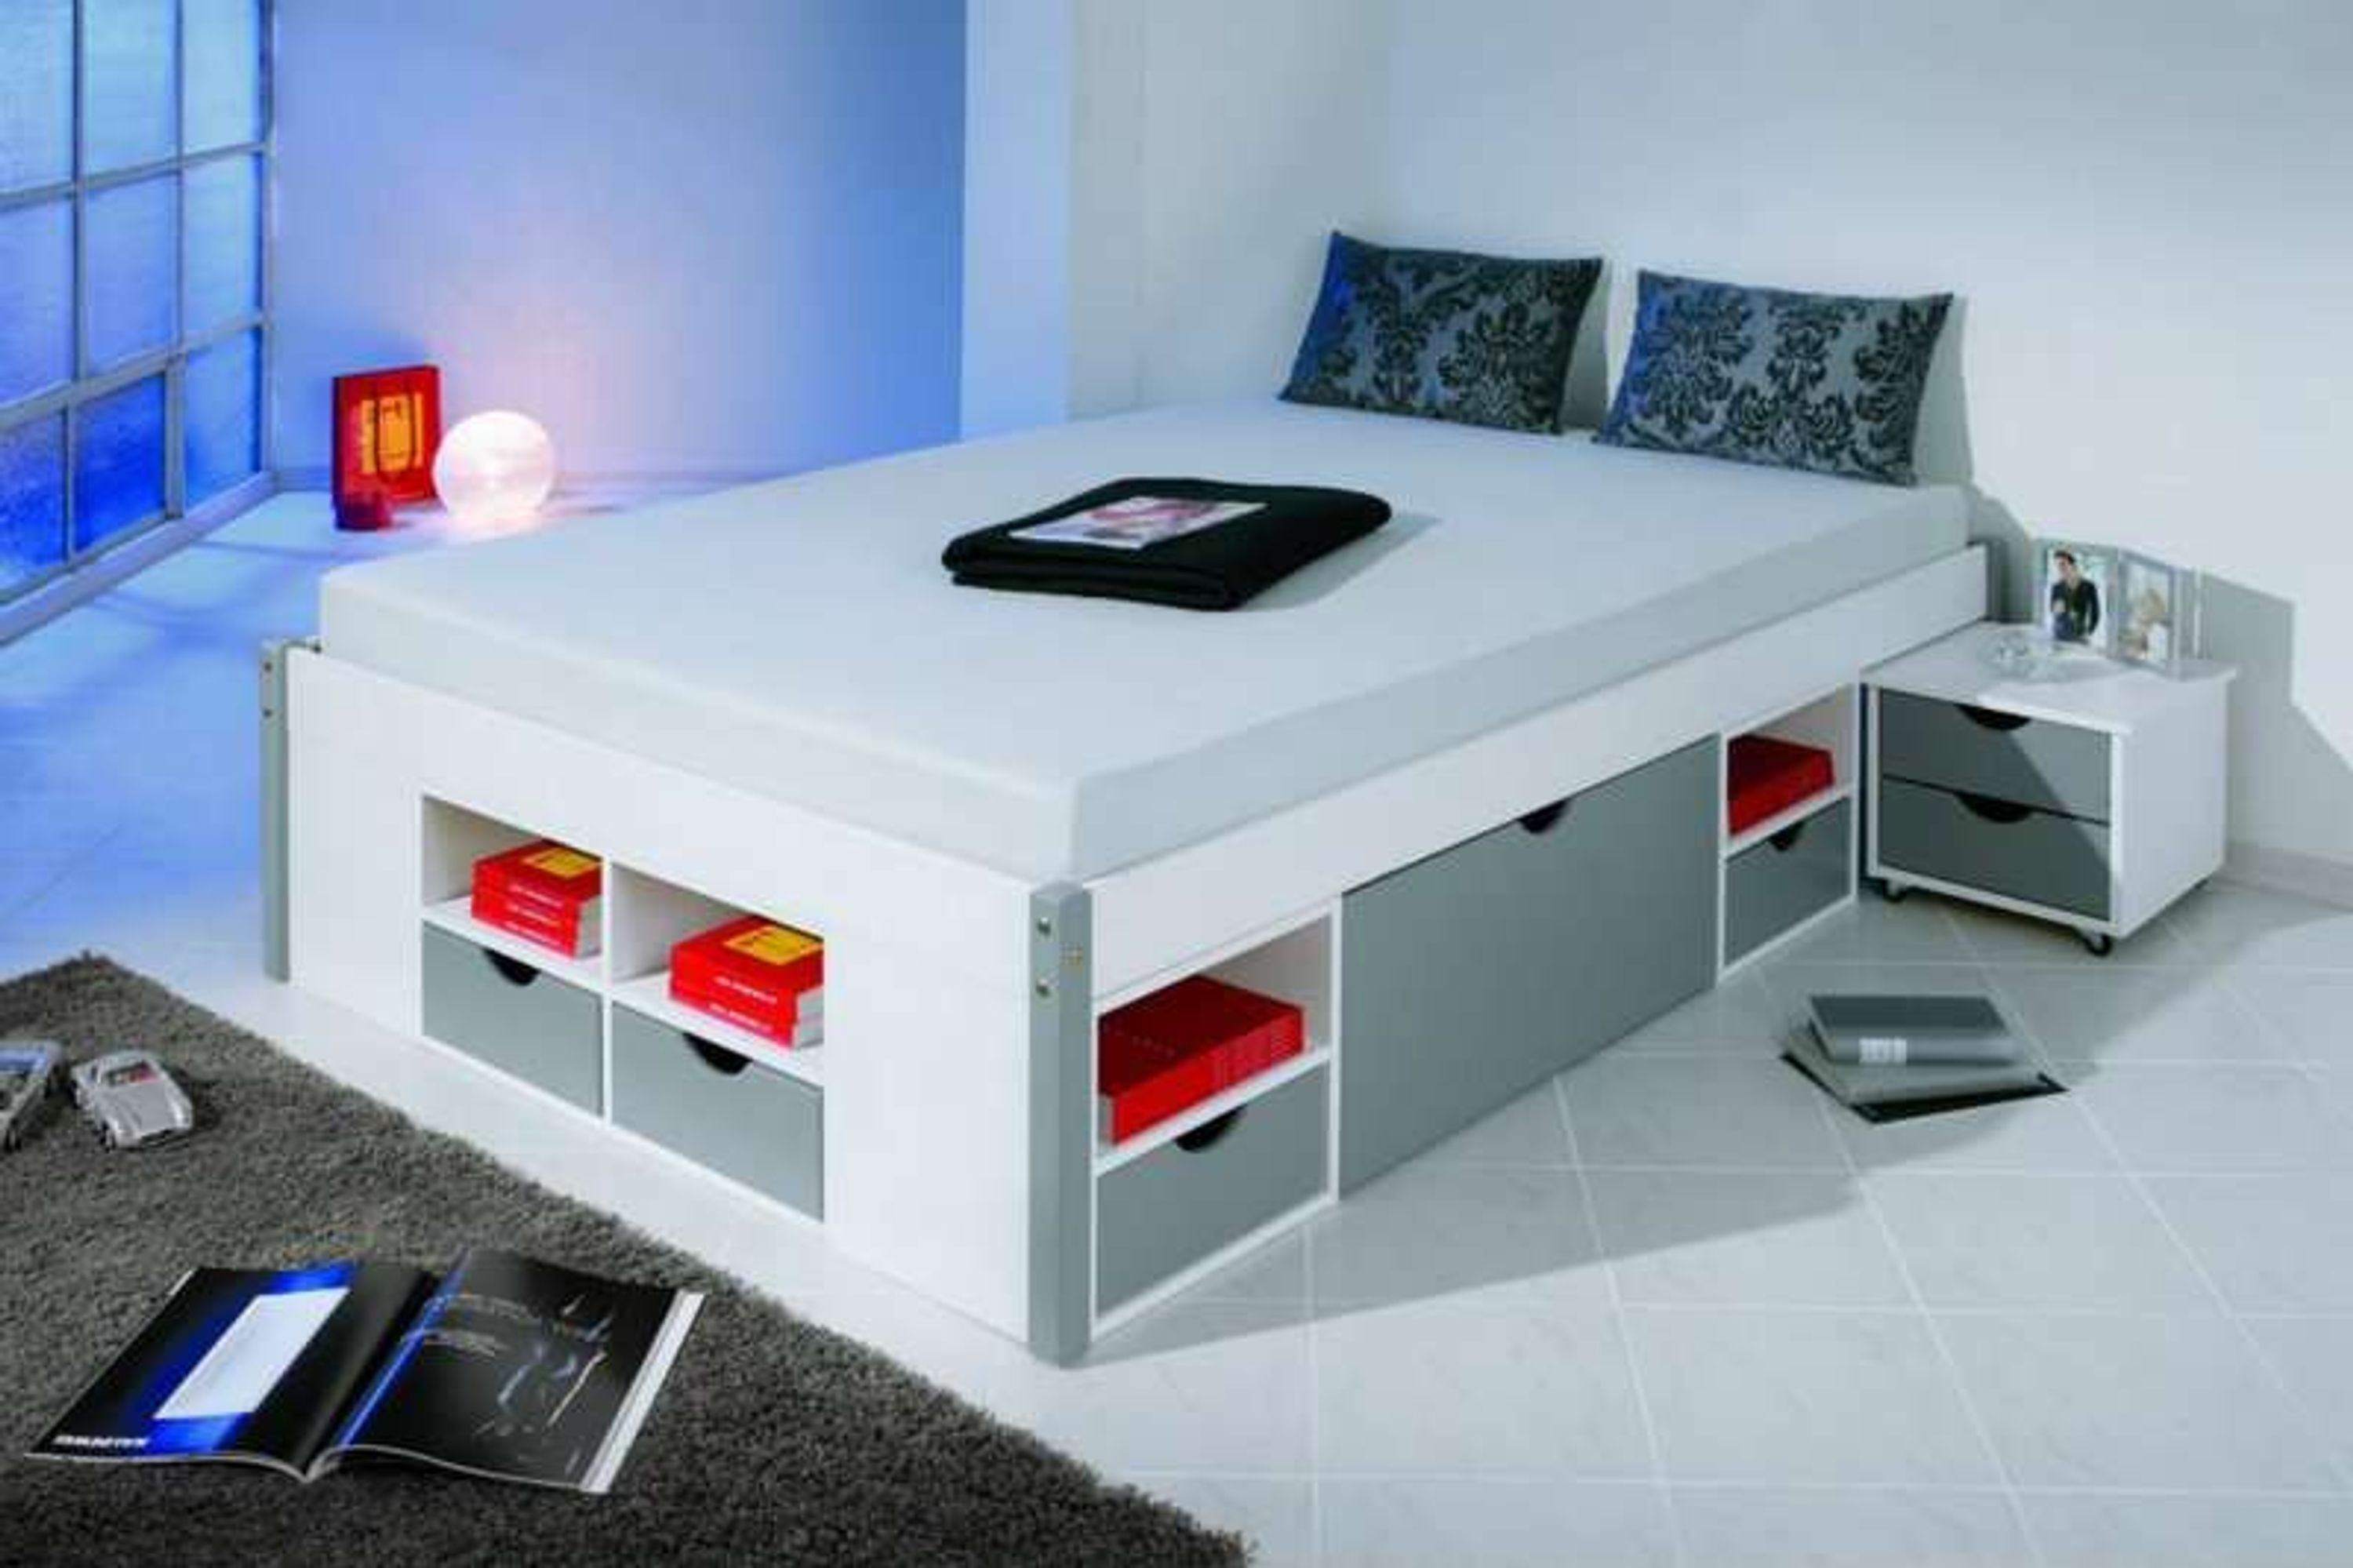 bett doppelbett 140 180 cm breit 2 kommoden 8 schubladen massivholz wei grau makis kaufen bei. Black Bedroom Furniture Sets. Home Design Ideas